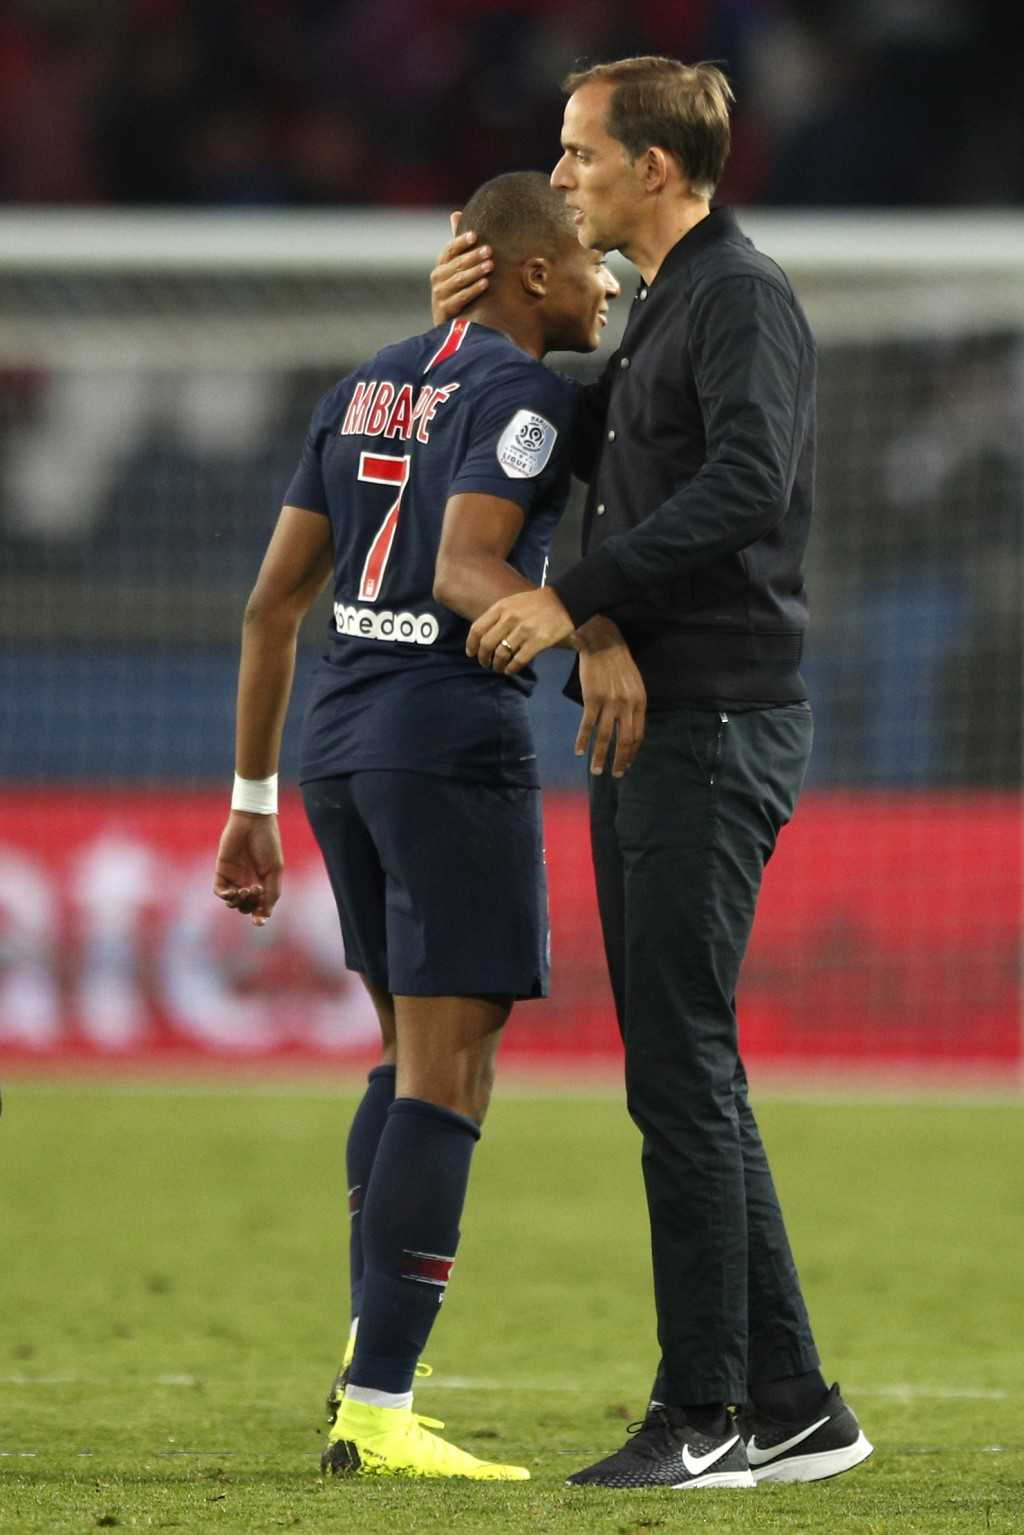 PSG coach Thomas Tuchel, right, embraces PSG's Kylian Mbappe after the French League One soccer match between Paris-Saint-Germain and Amiens at the Pa